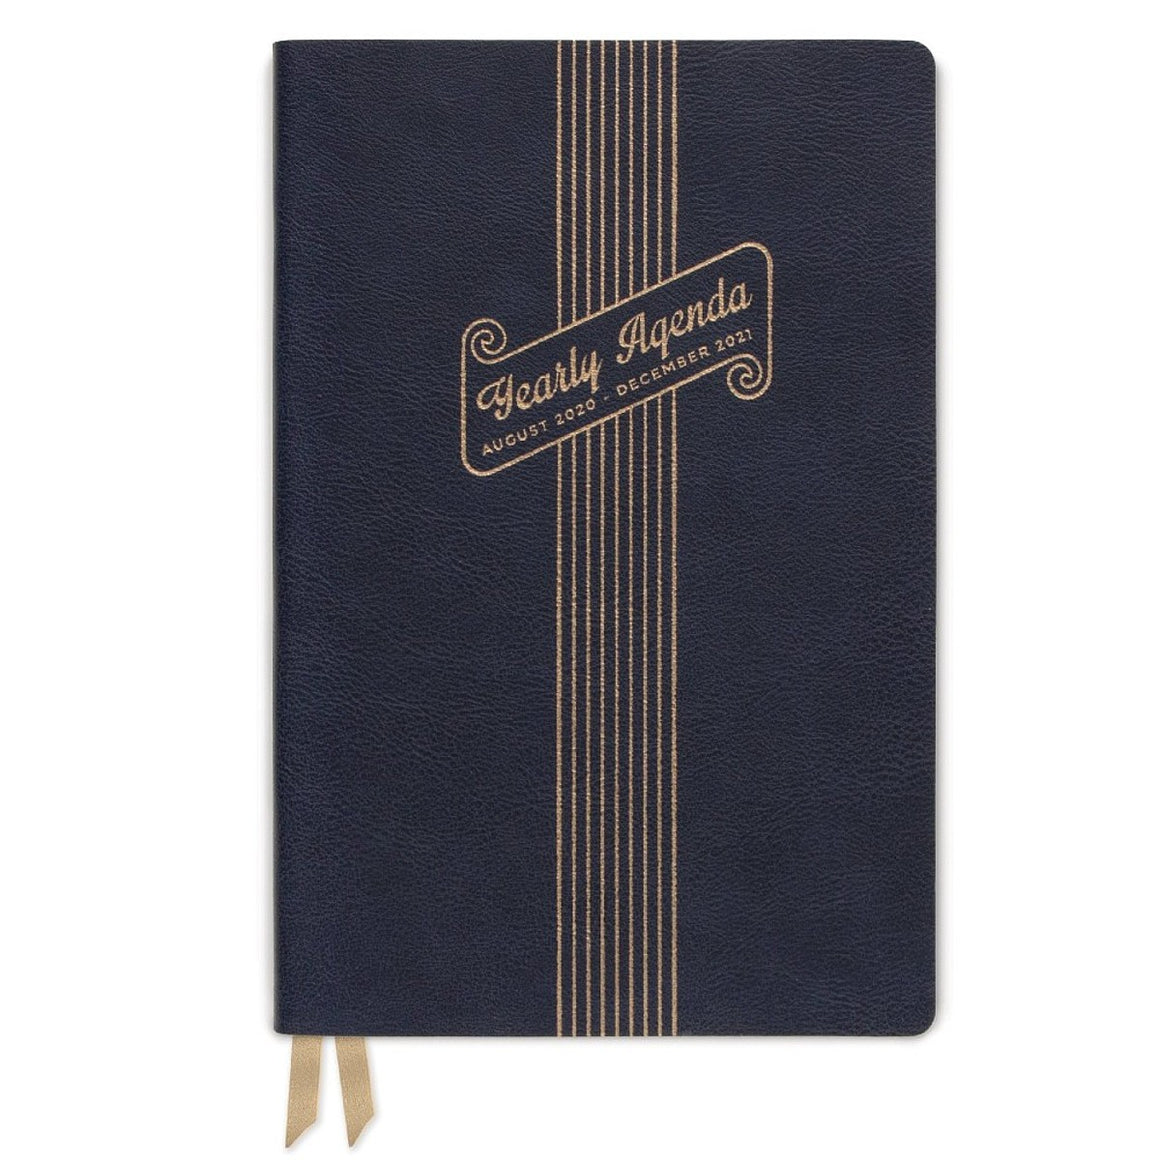 "The cover of a 2020 - 2021 diary featuring gold embossing on a black background. The Gold takes the form of a scroll outline containing the text "" Yearly Agenda August 2020 - December 2021"""